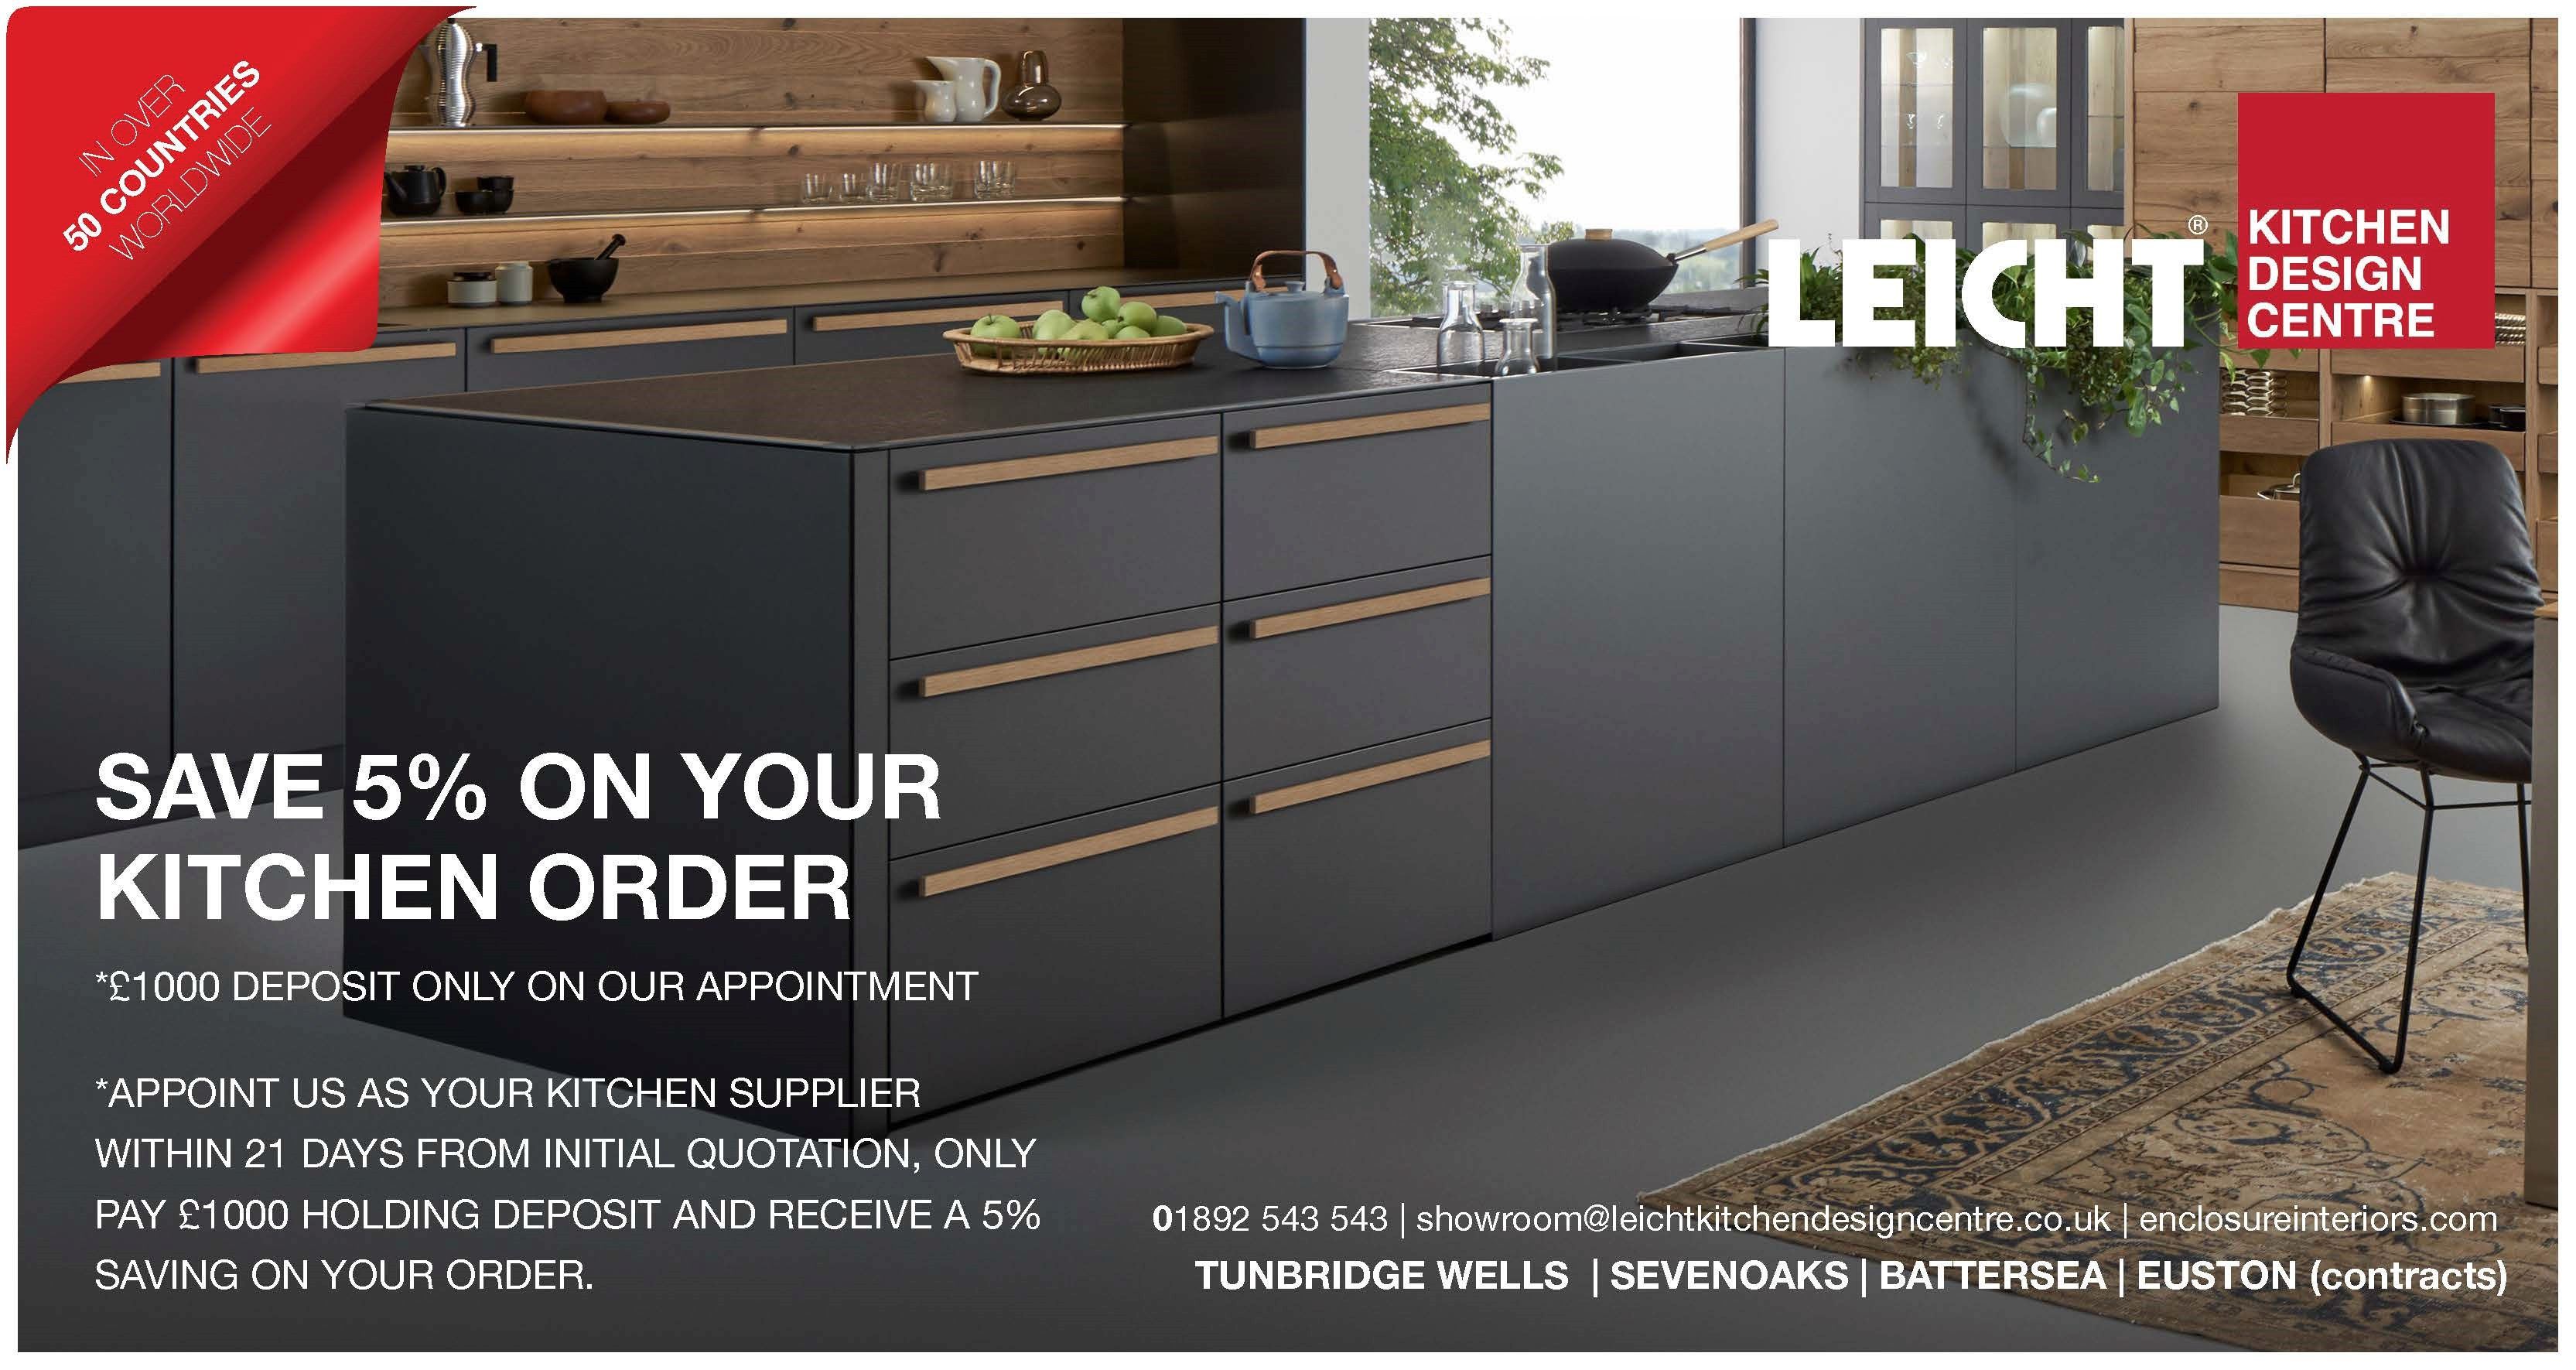 save 5% on your kitchen order